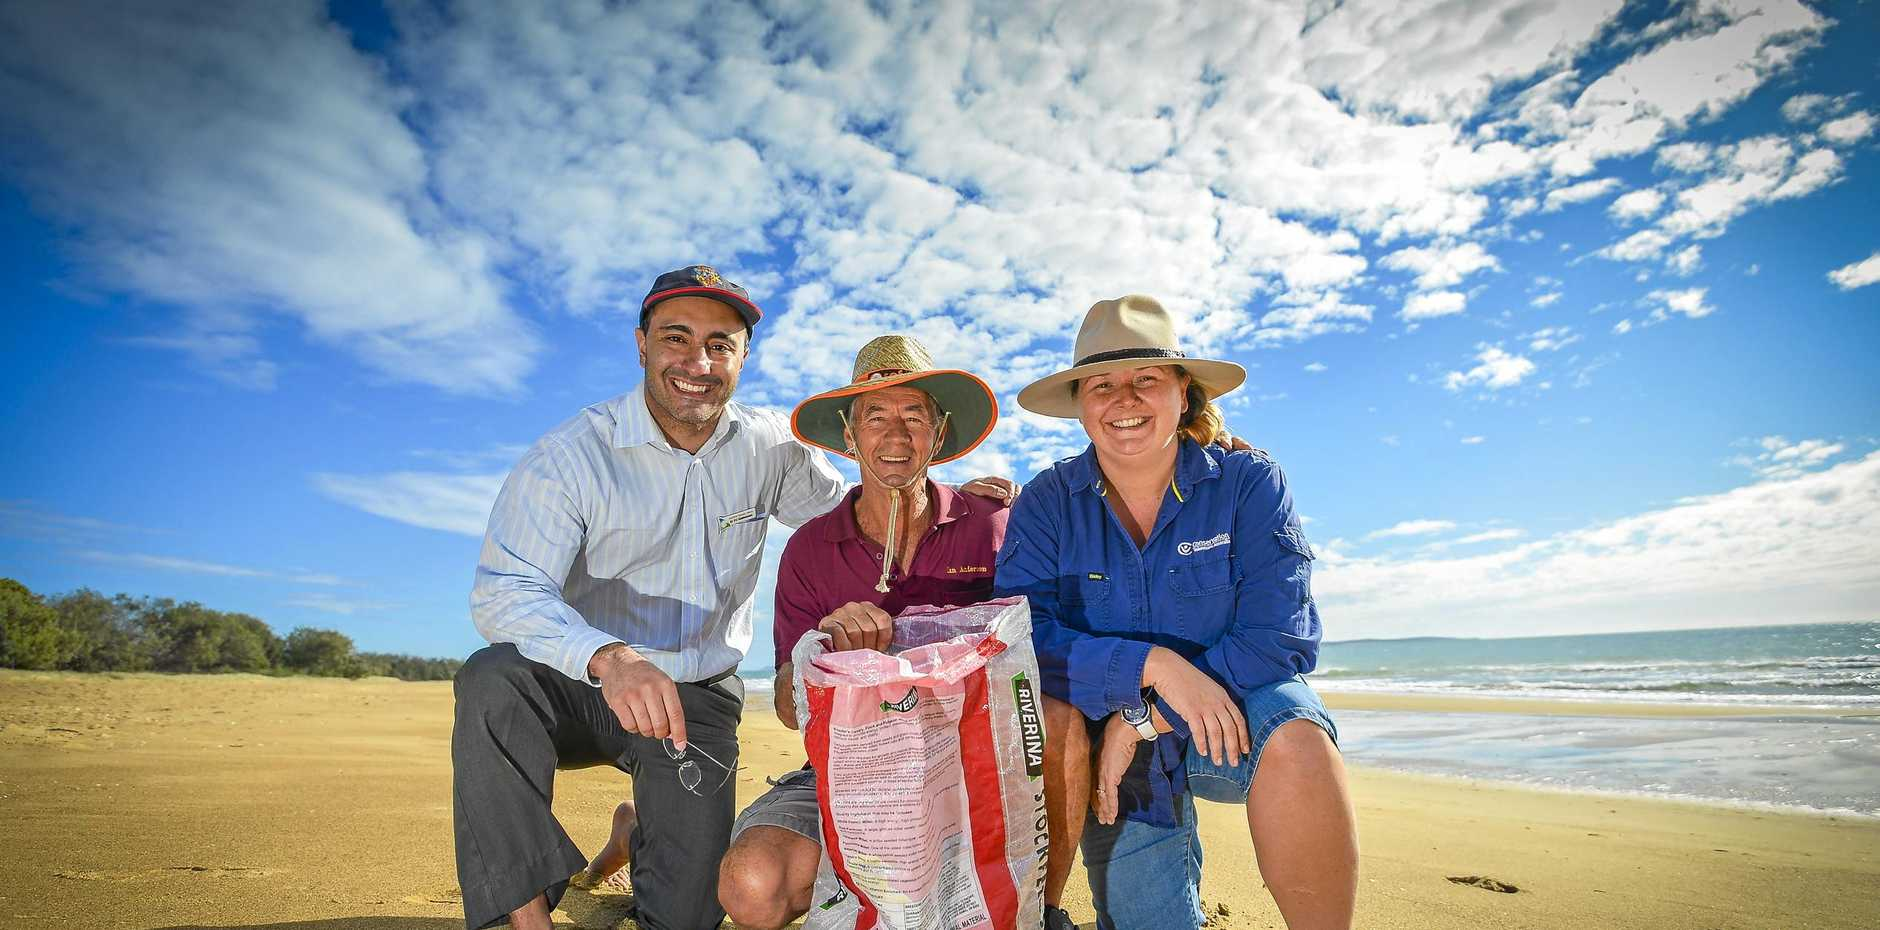 Gladstone regional councillor PJ Sobhanian, membership chairperson for Boyne Island Lions Club Ian Anderson and Regional Manager of Conservation Volunteers Australia Linda Fahle on Tannum Sands Beach, after it was named Queensland's Cleanest Beach.